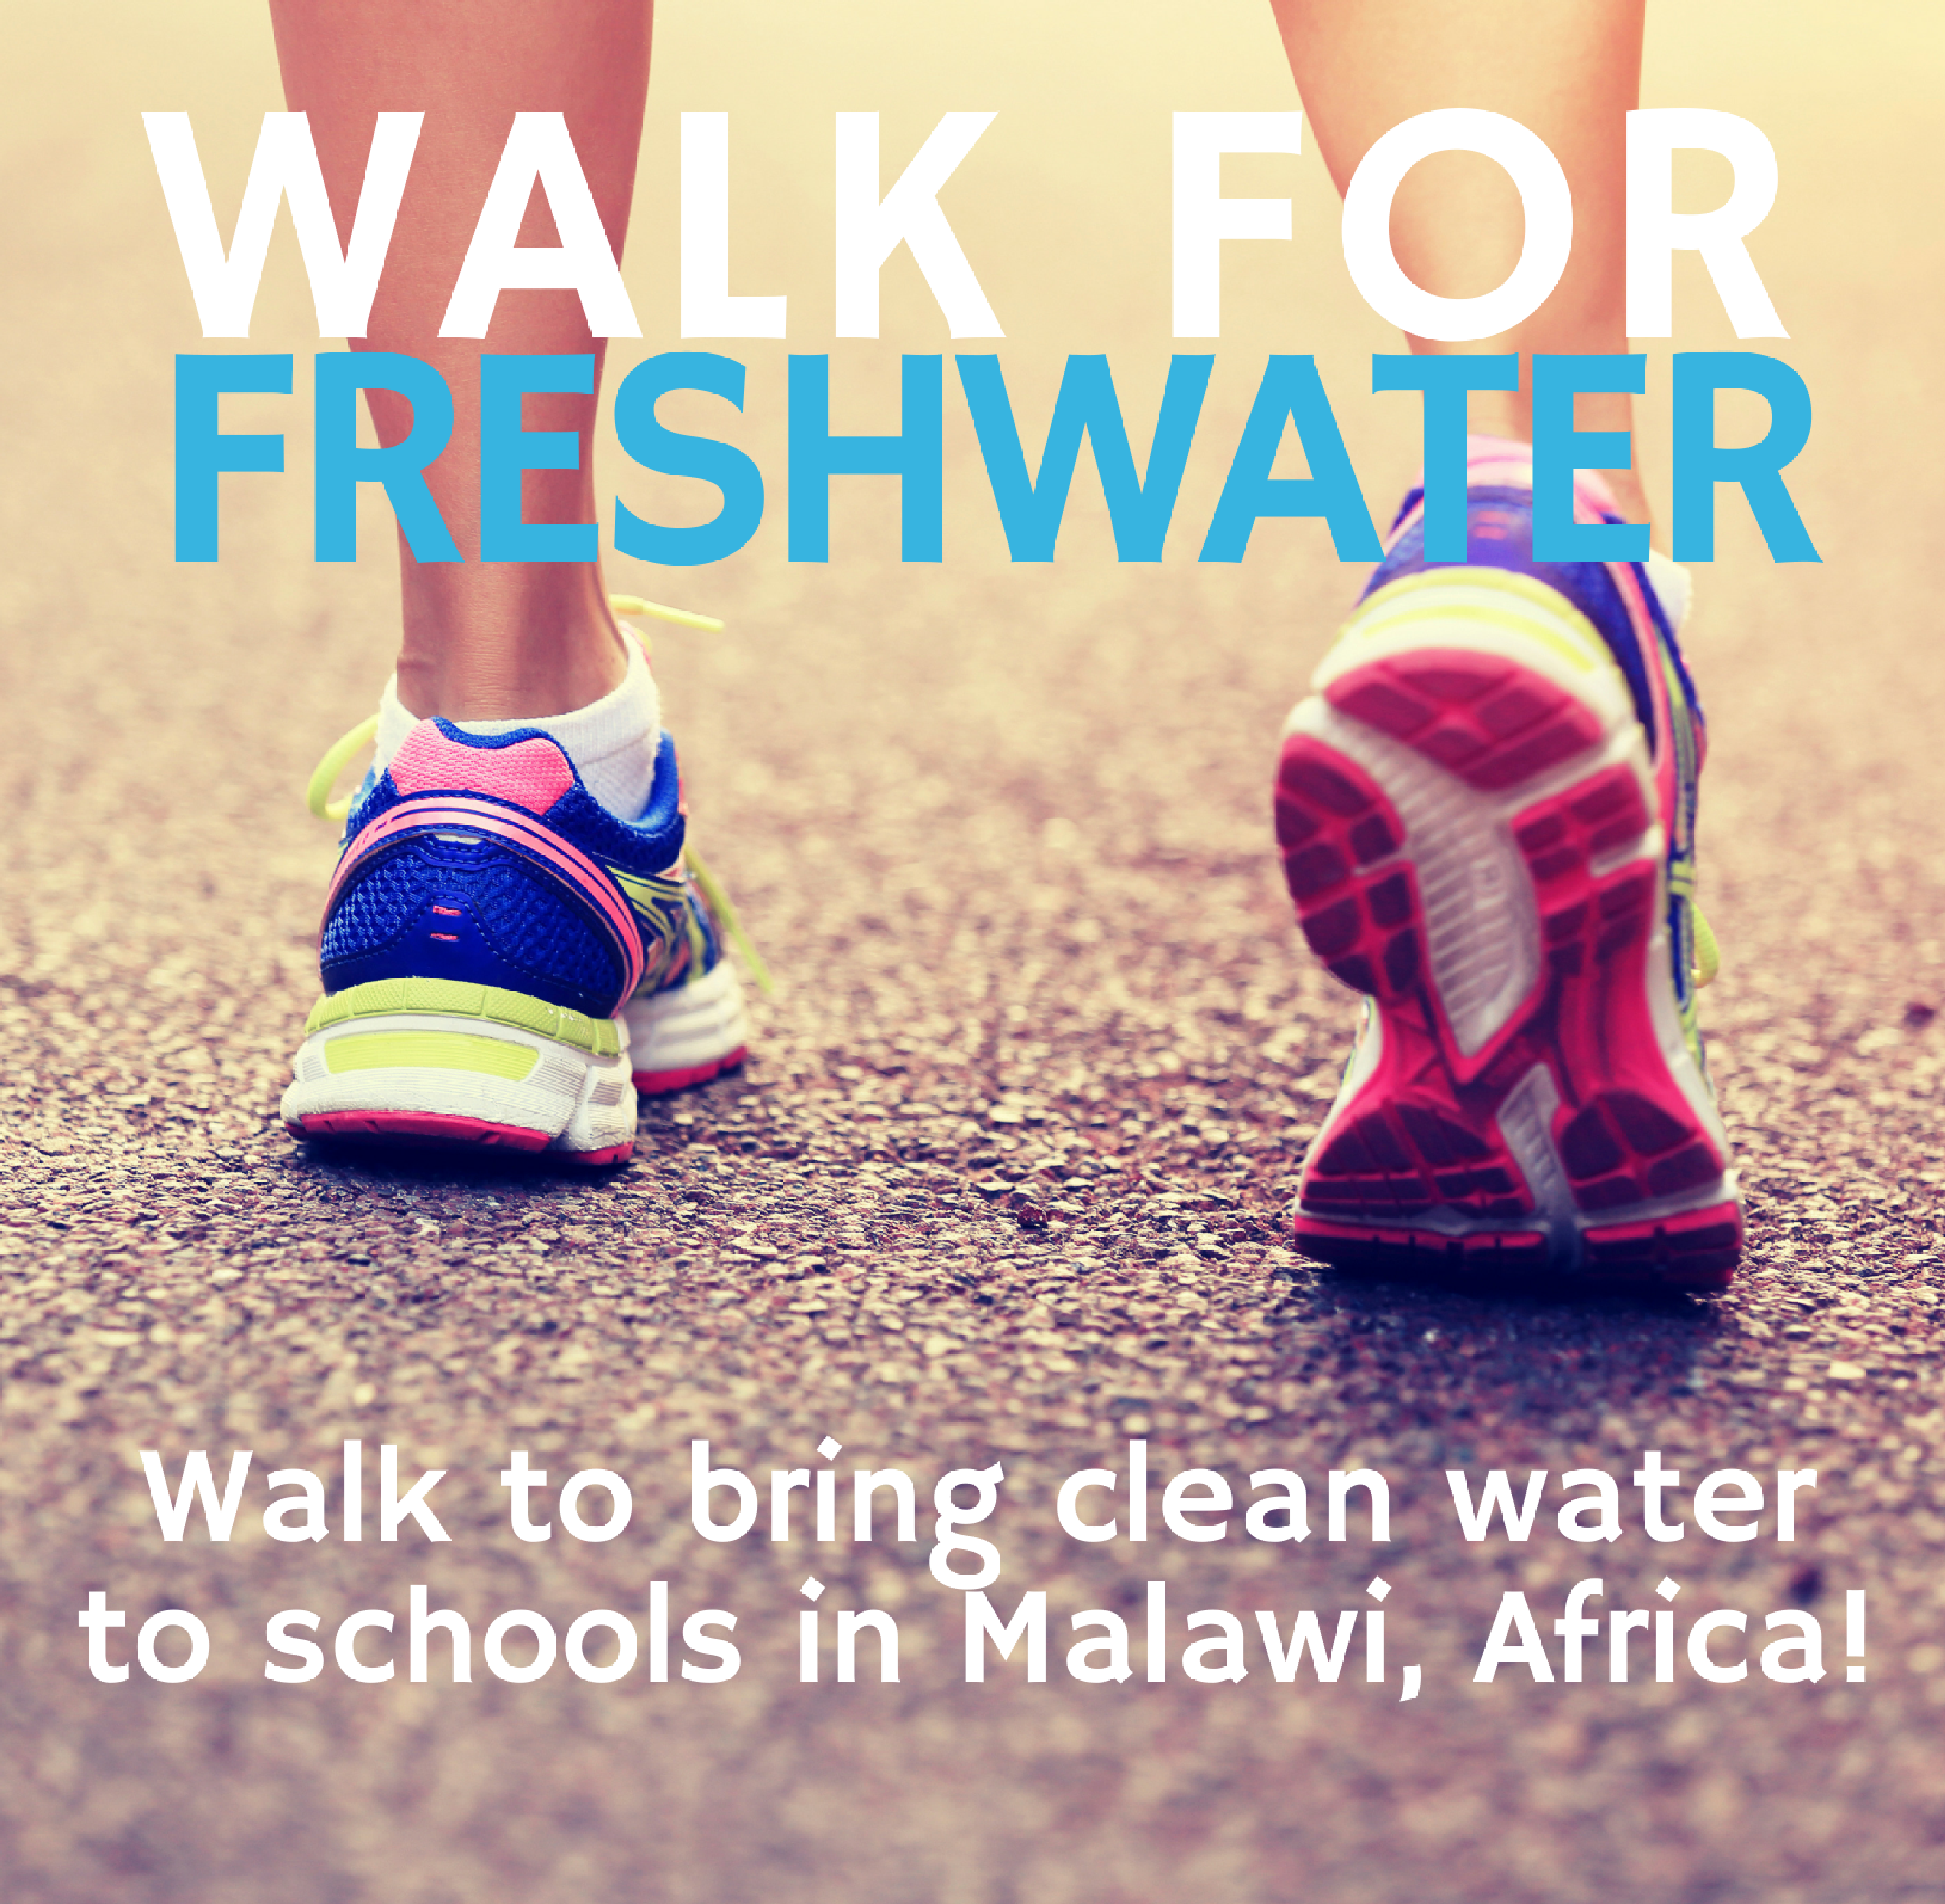 WALK FOR FRESHWATER-2017 Photo